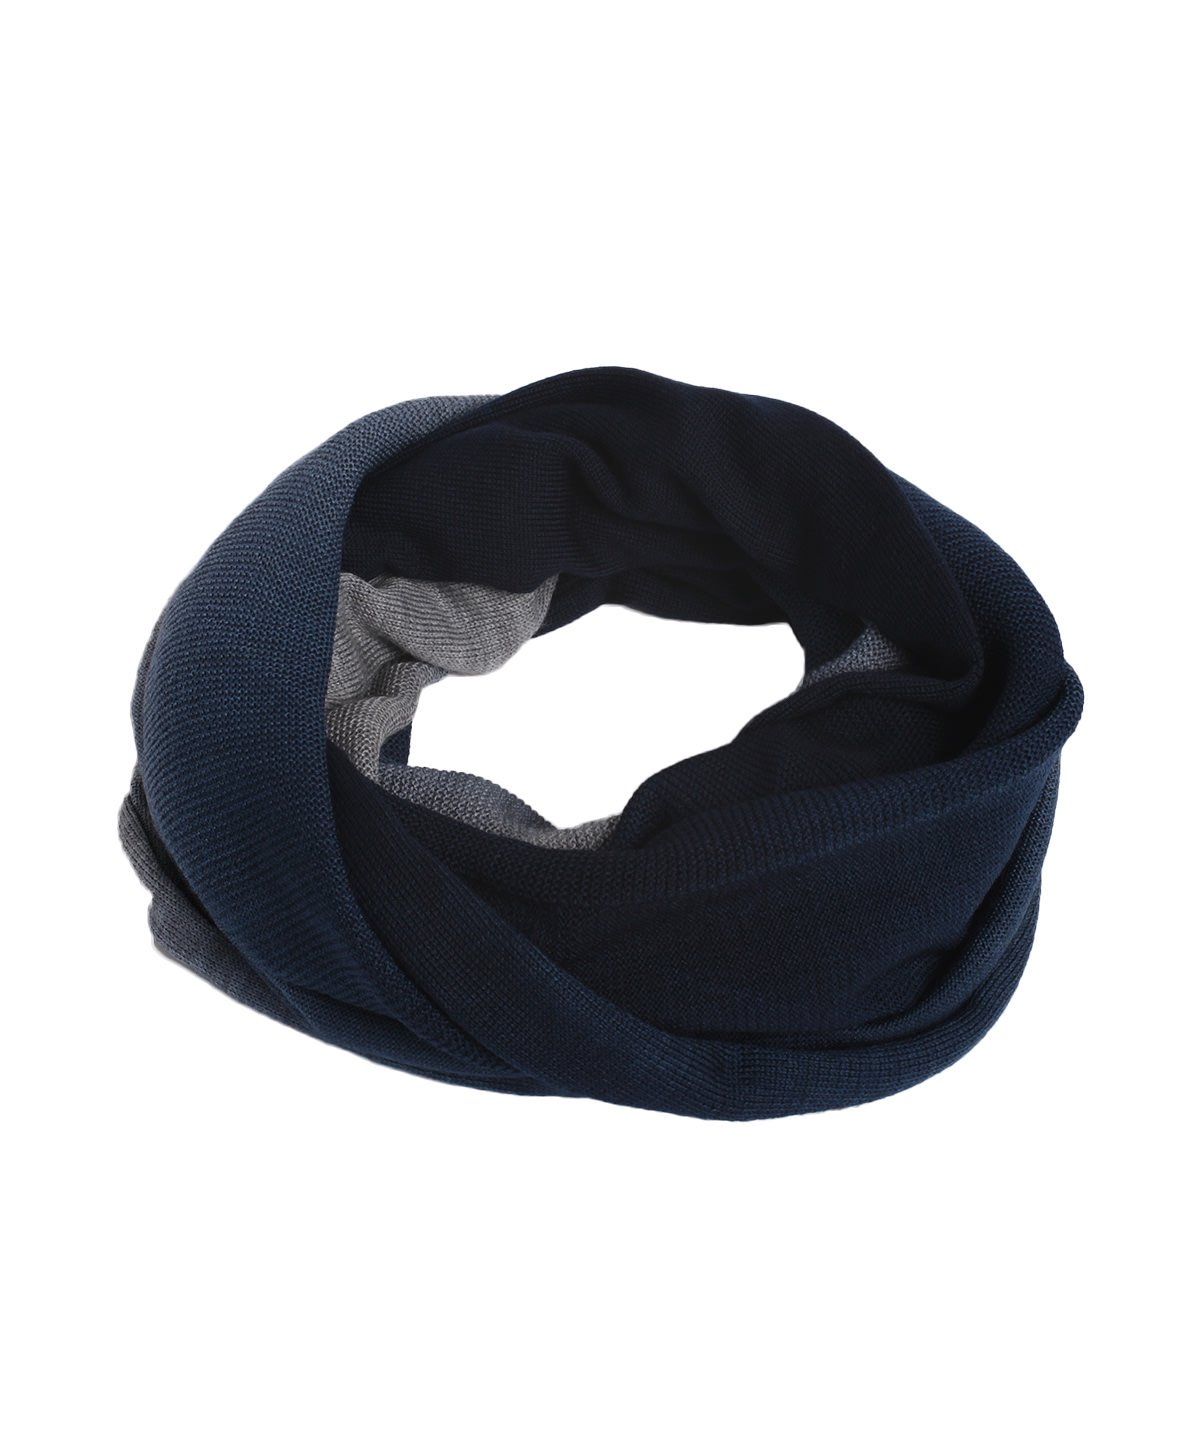 GRADATION TWIST NECKWARMER 詳細画像2